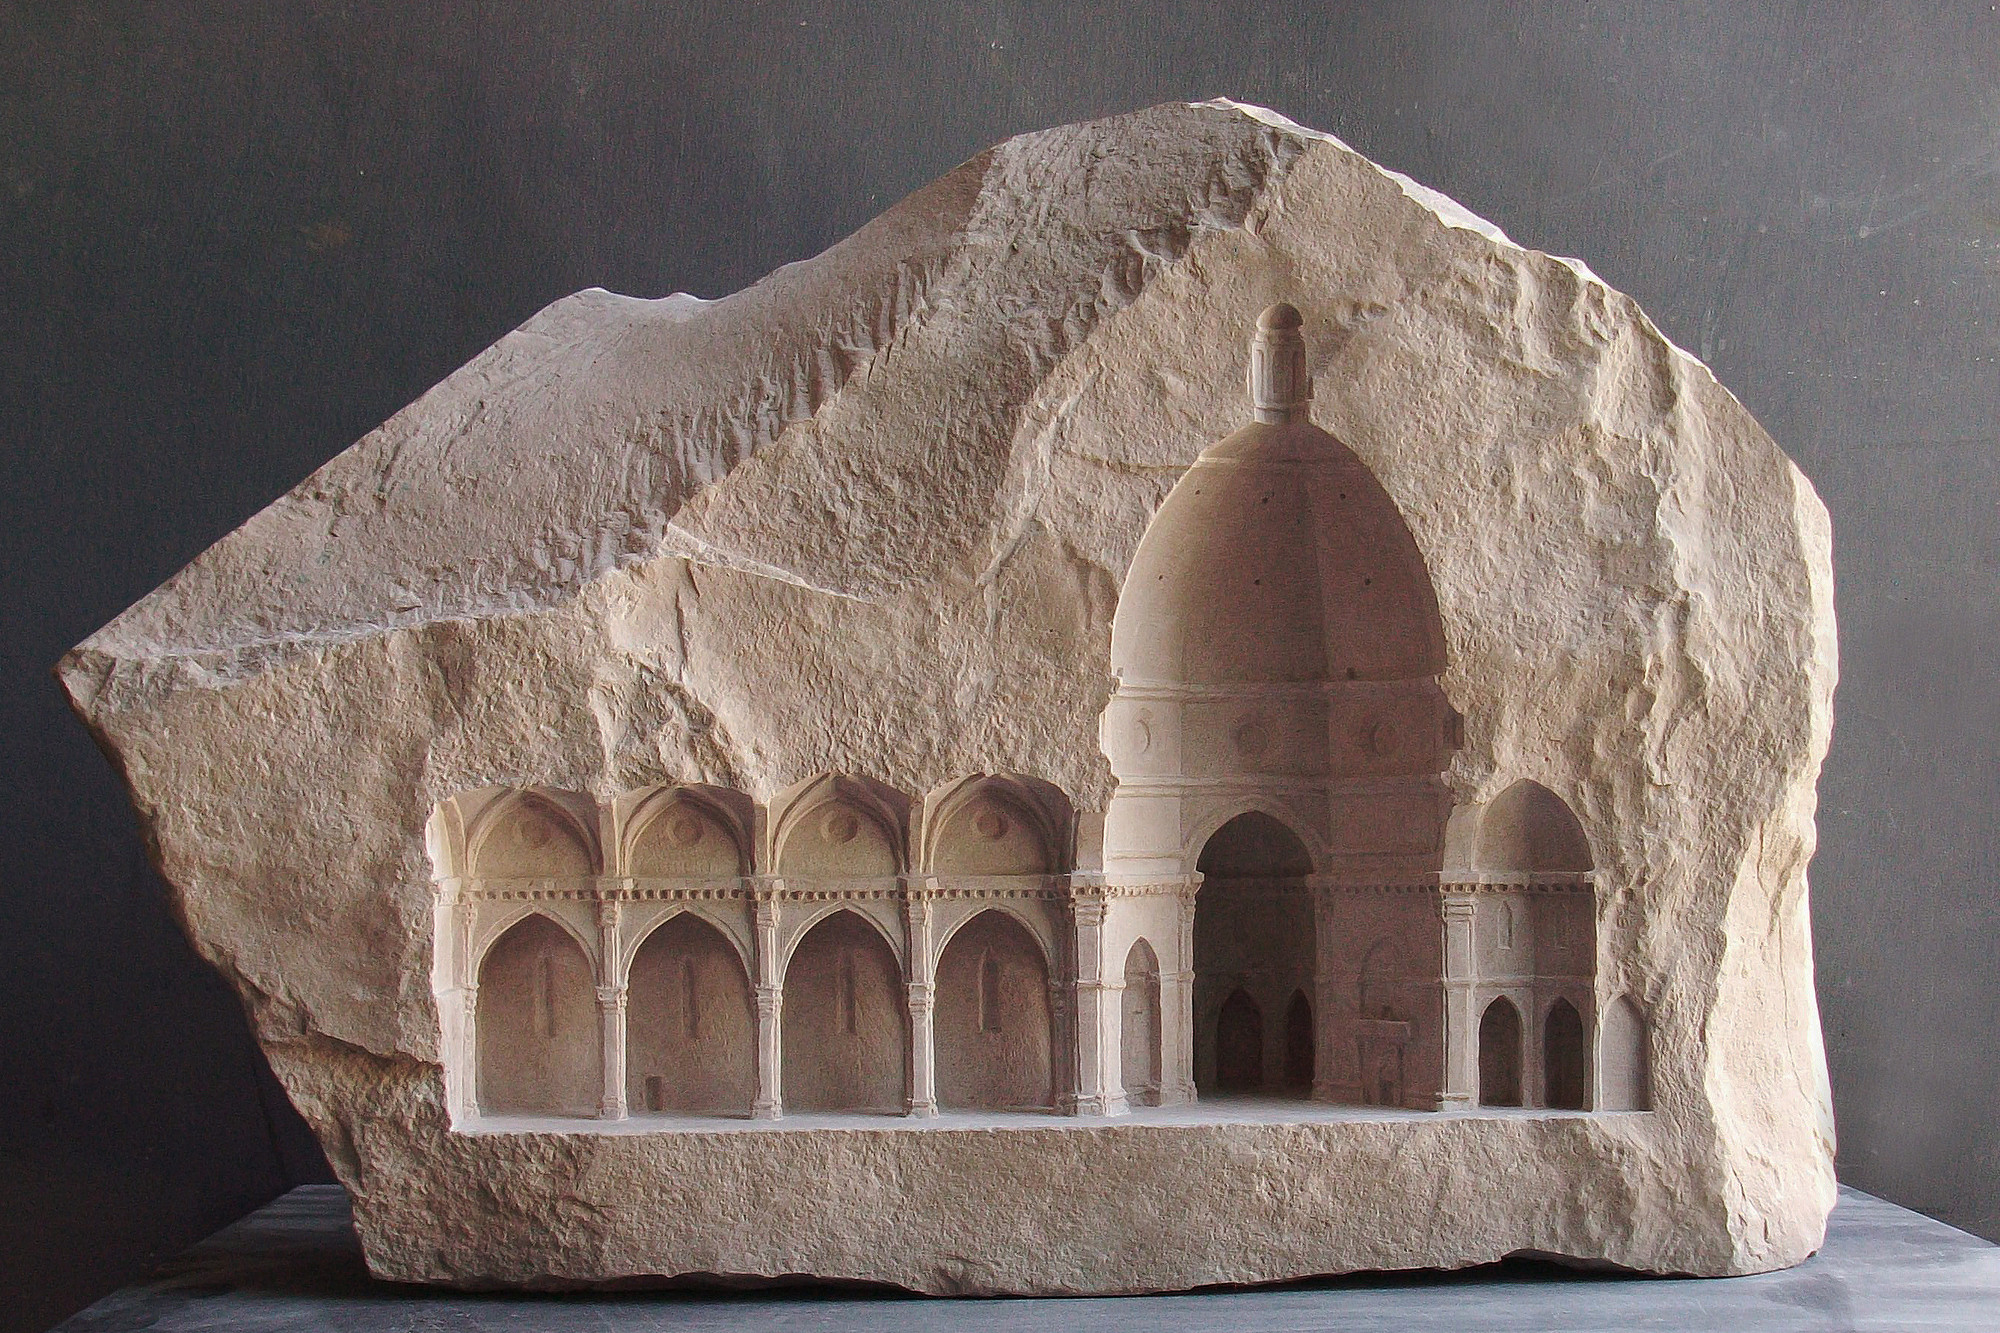 Miniature spaces carved from stone archdaily